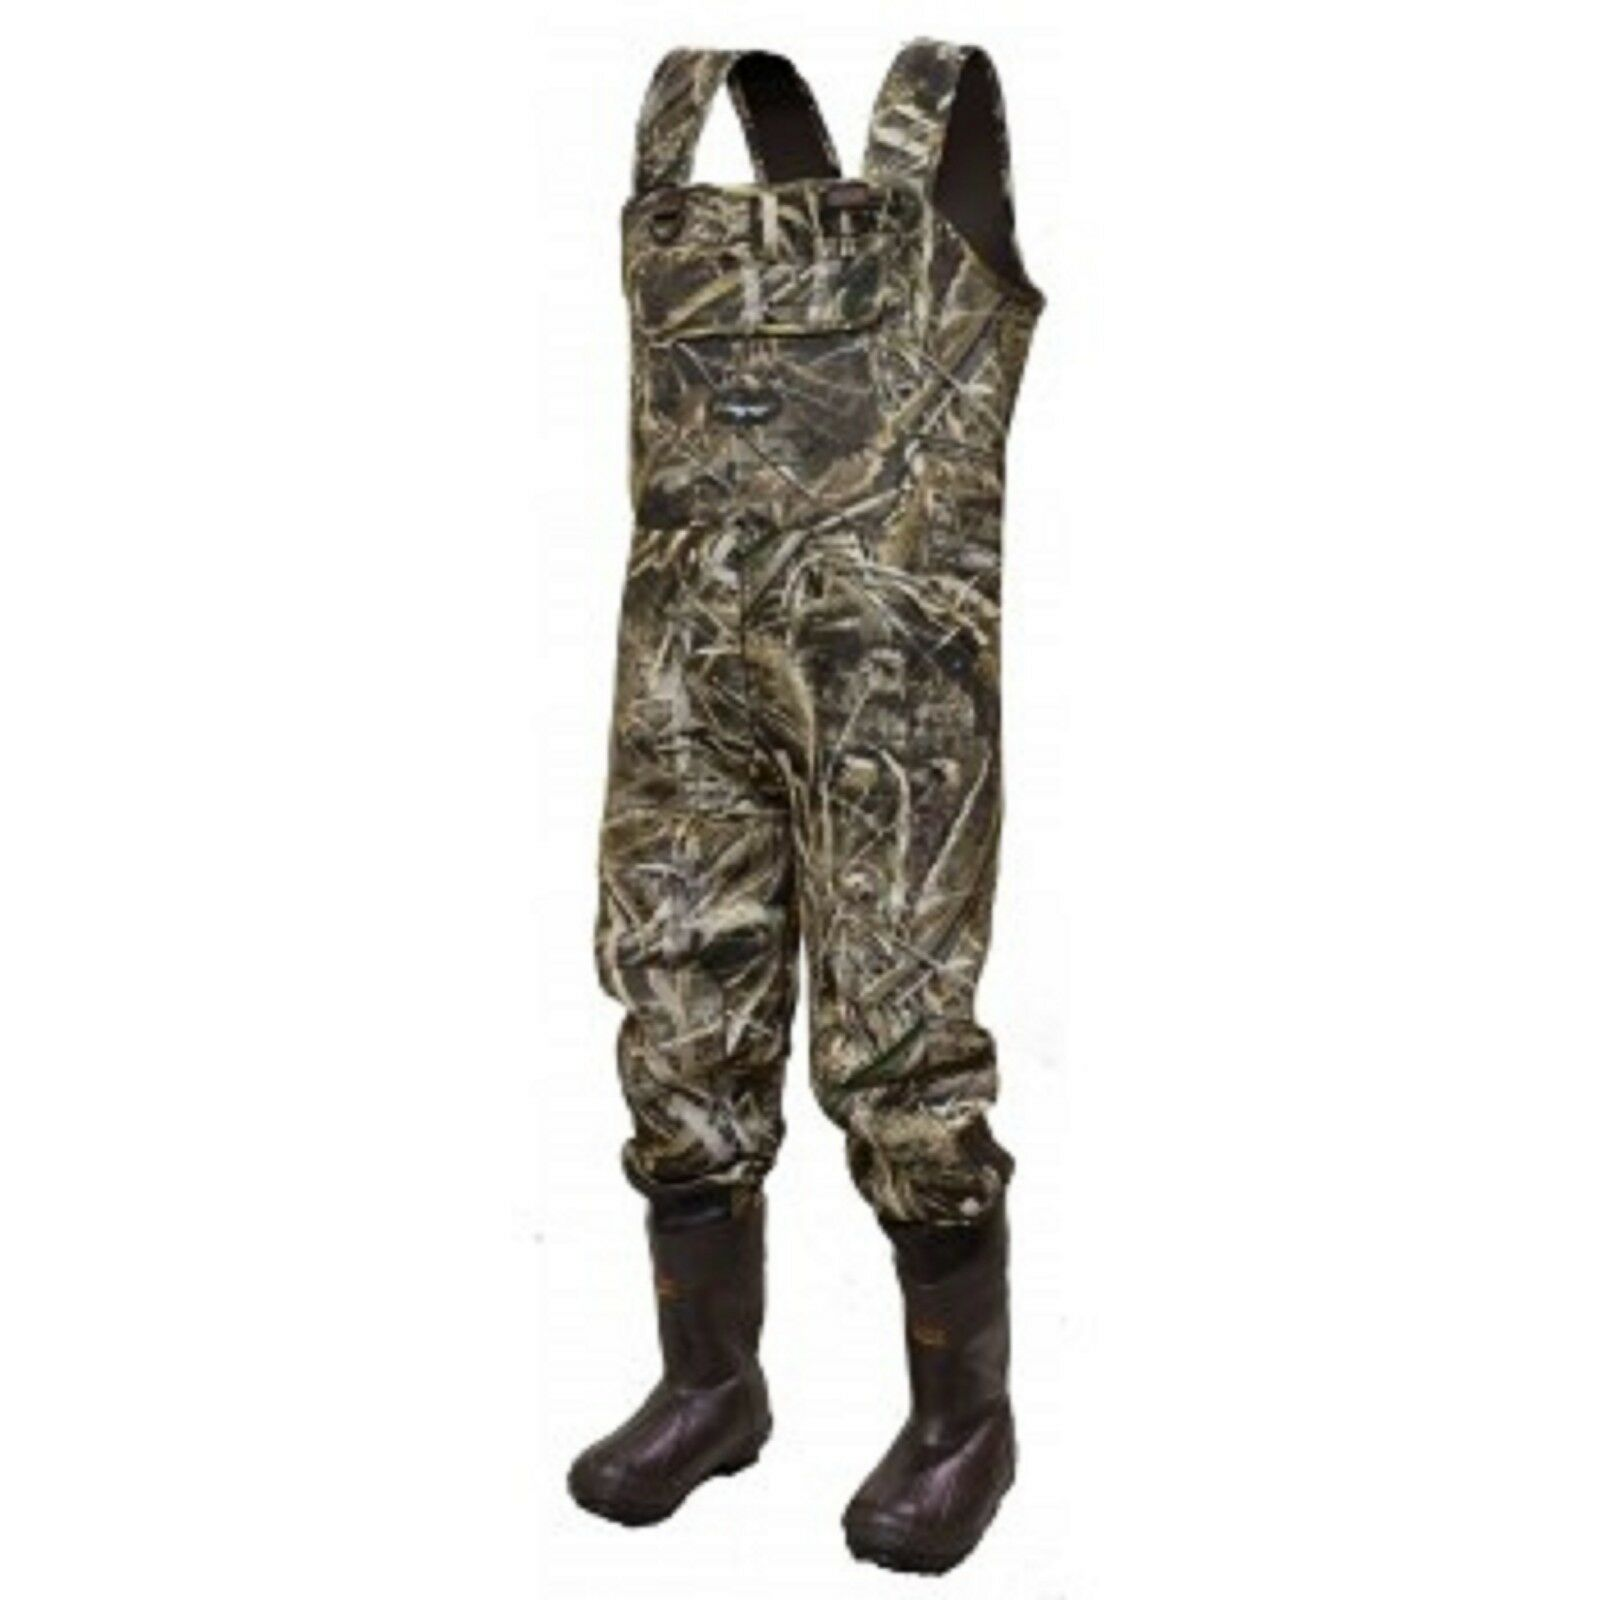 Frogg Toggs Amphib Camo Wader Dimensiones 814  2713656  CHOOSE YOUR Dimensione   1